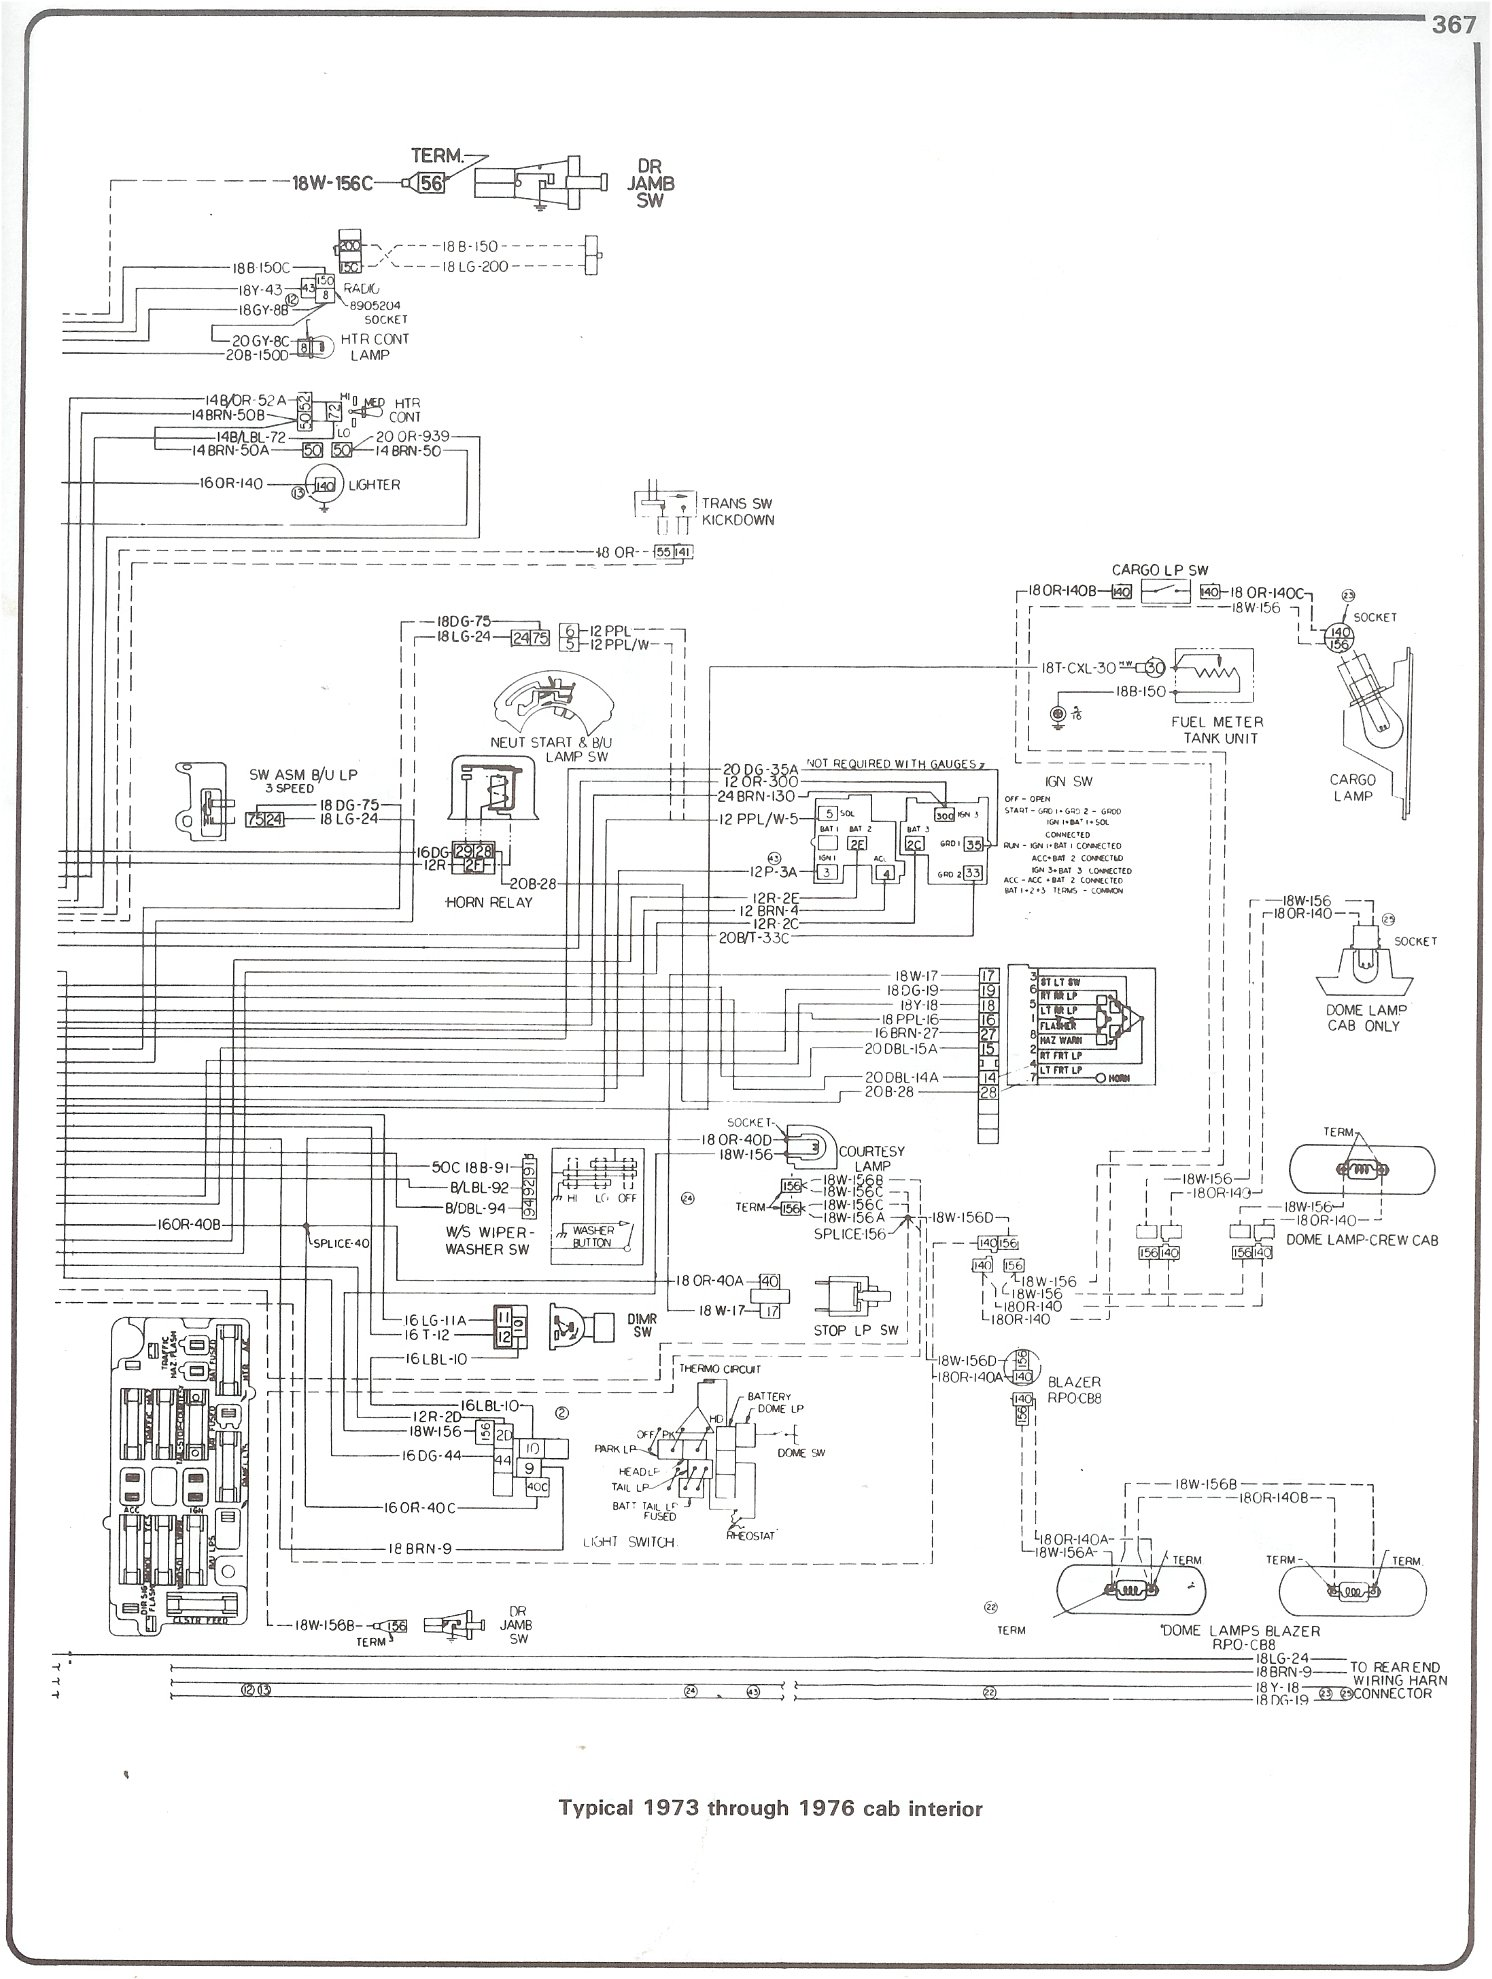 1976 Chevy C10 Wiring Diagram Diagrams Source For A 1985 Pickup Complete 73 87